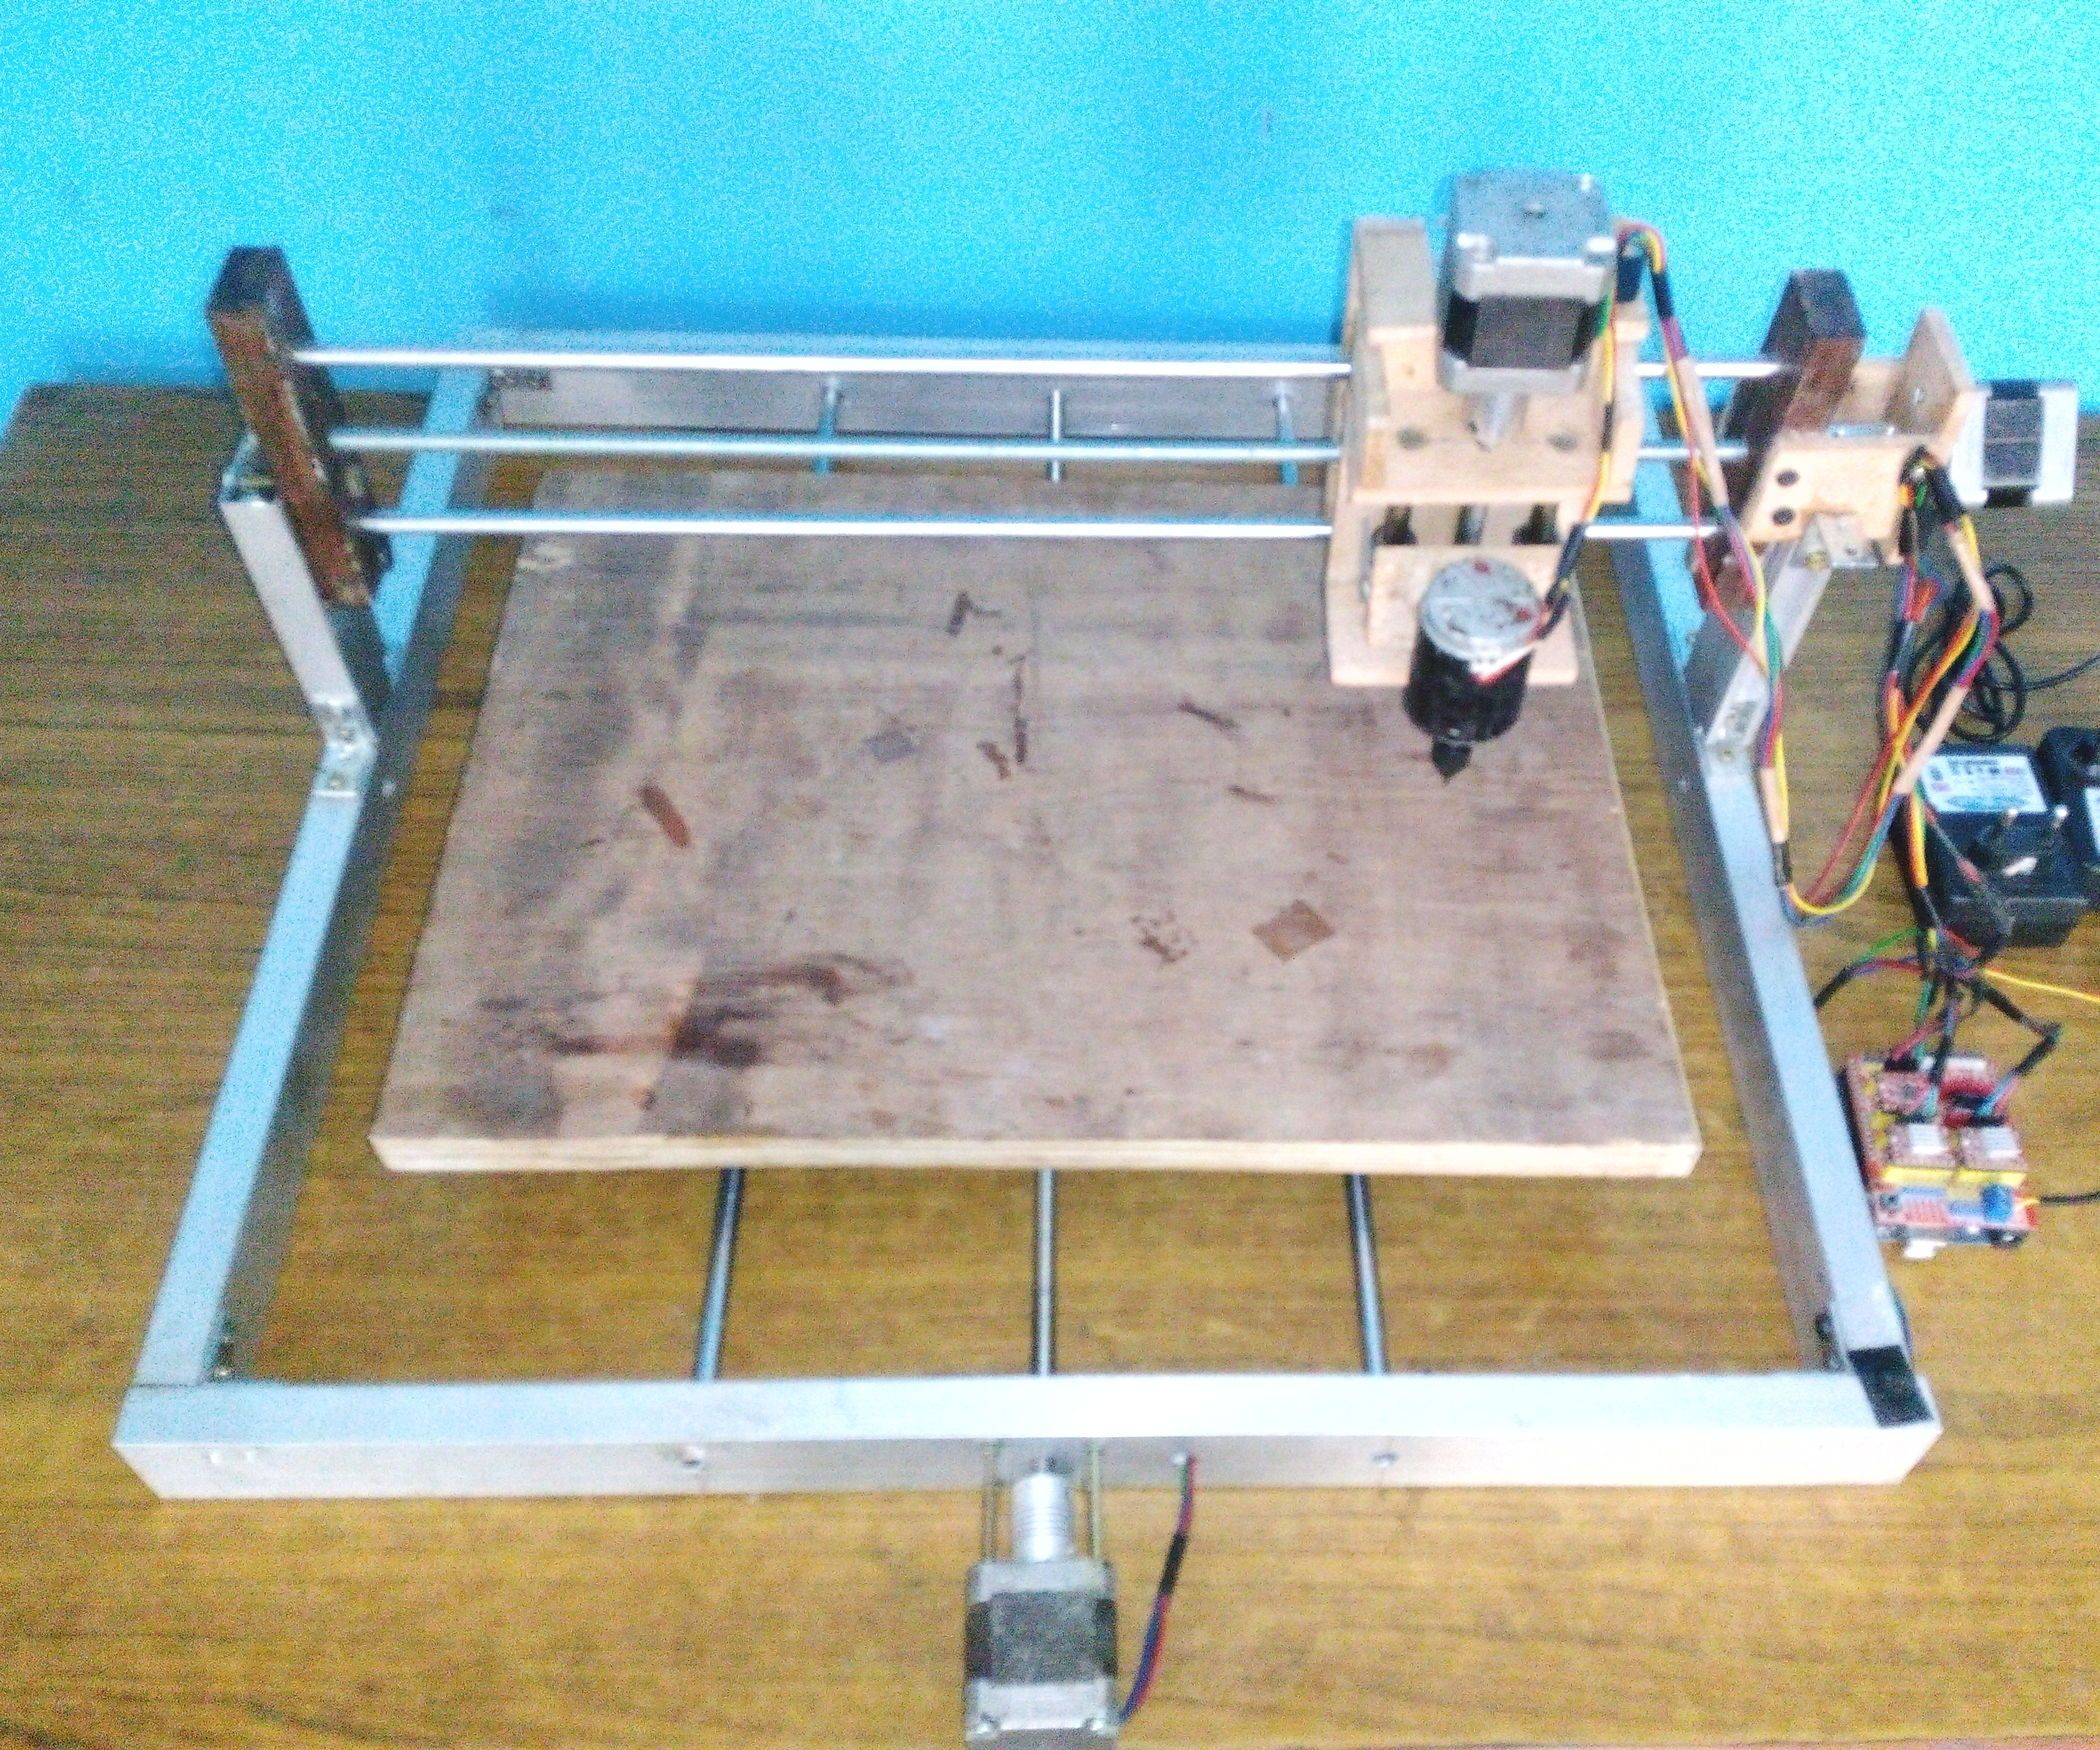 Diy wood engraving cnc router woodworking crafts router